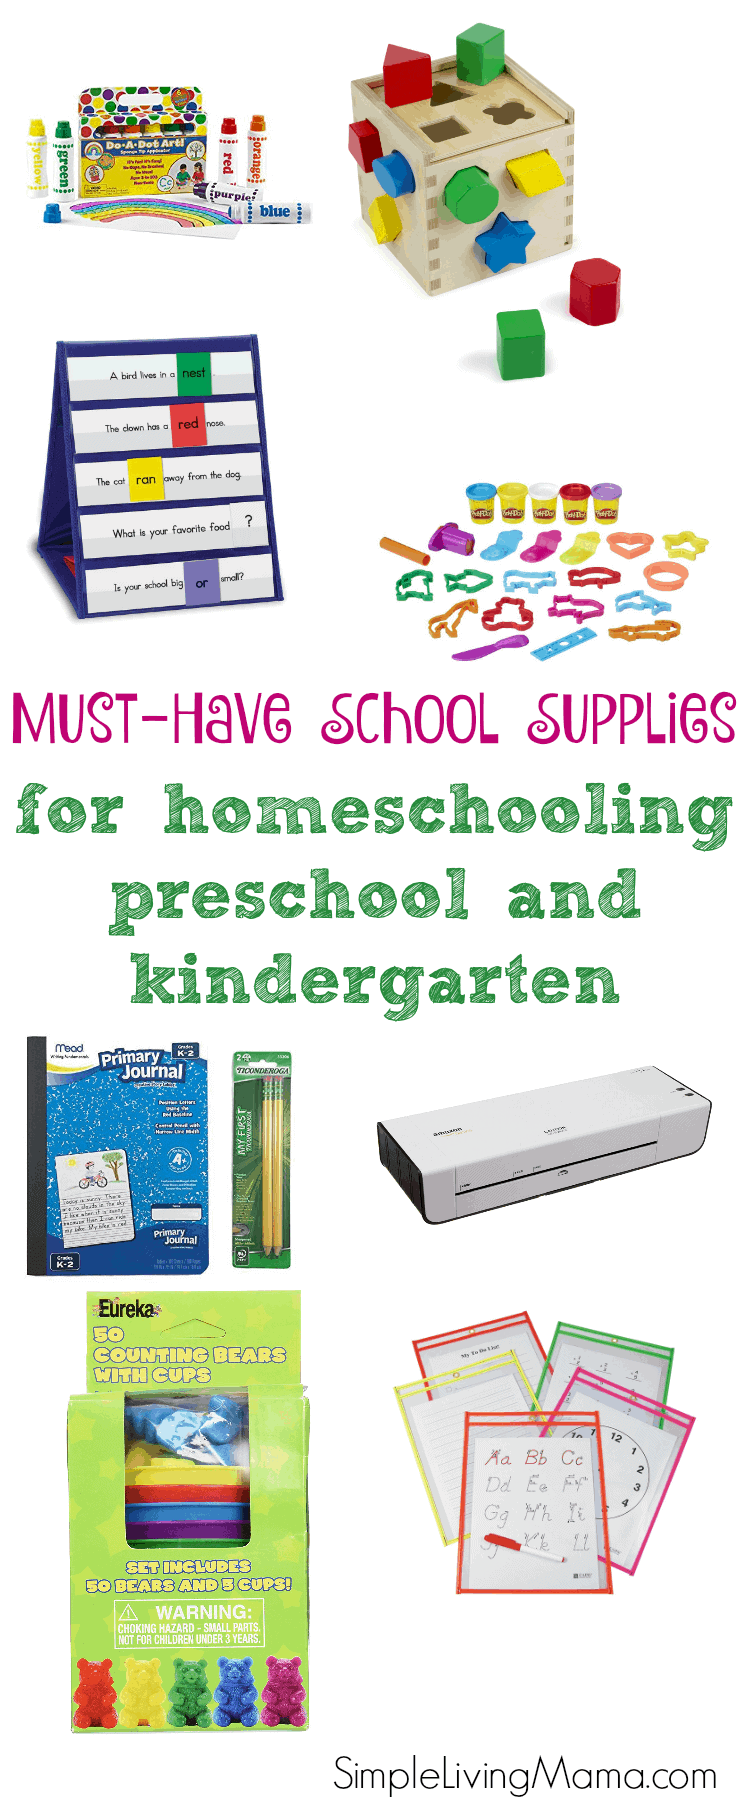 These must-have college materials for homeschooling preschool and preschool be useful when training your son or daughter!